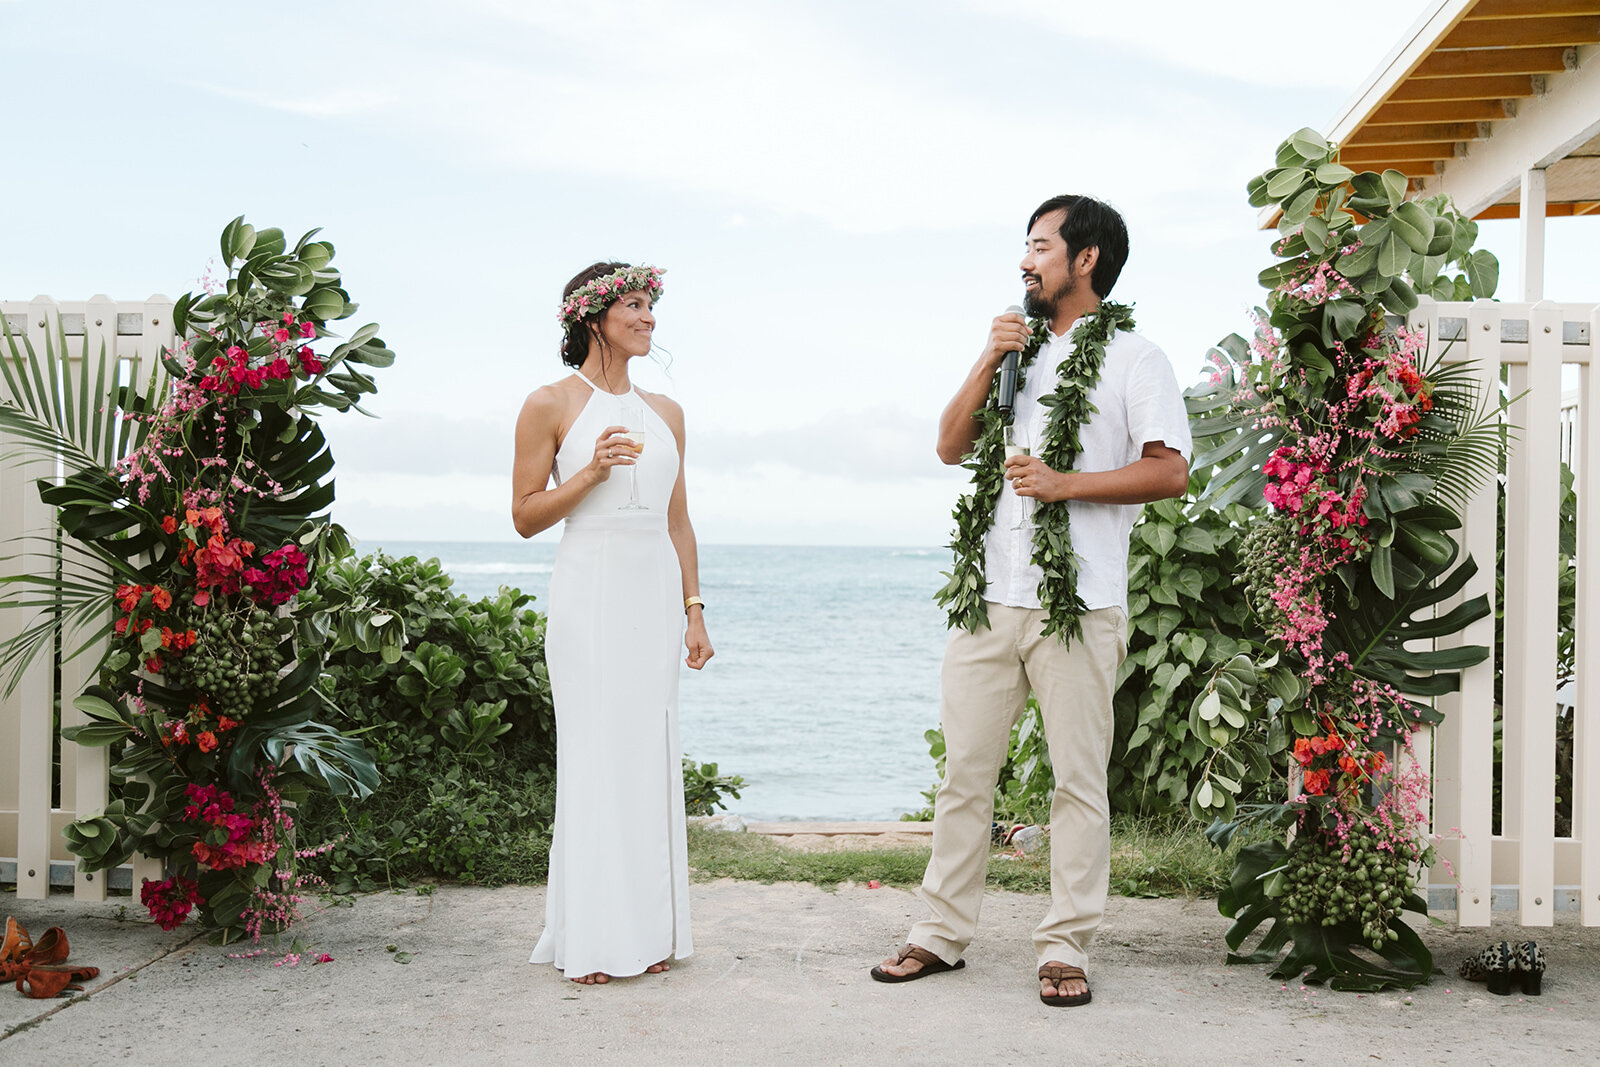 Mokuleia-North-Shore-Hawaii-Beach-House-Wedding-ceremony-champagne-toast